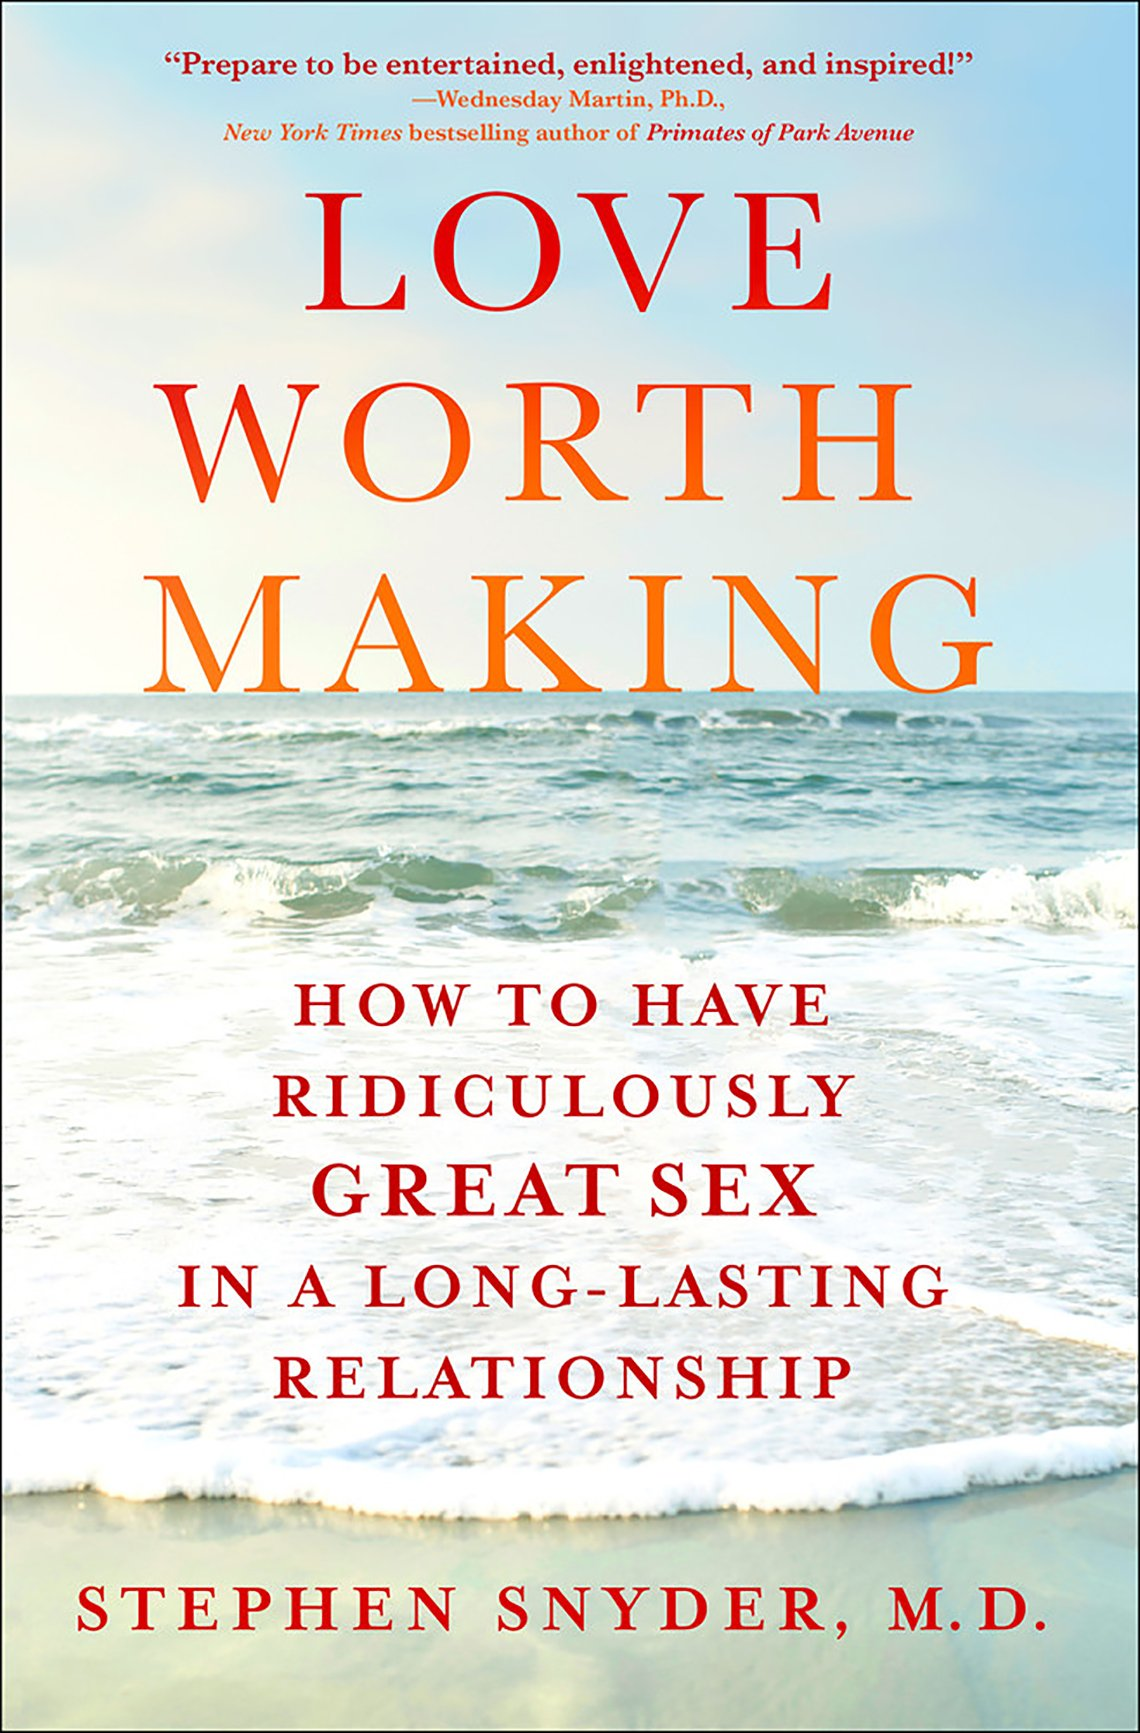 Book cover of Love Worth Making by Stephen Snyder. A sunset view of the ocean from a shore